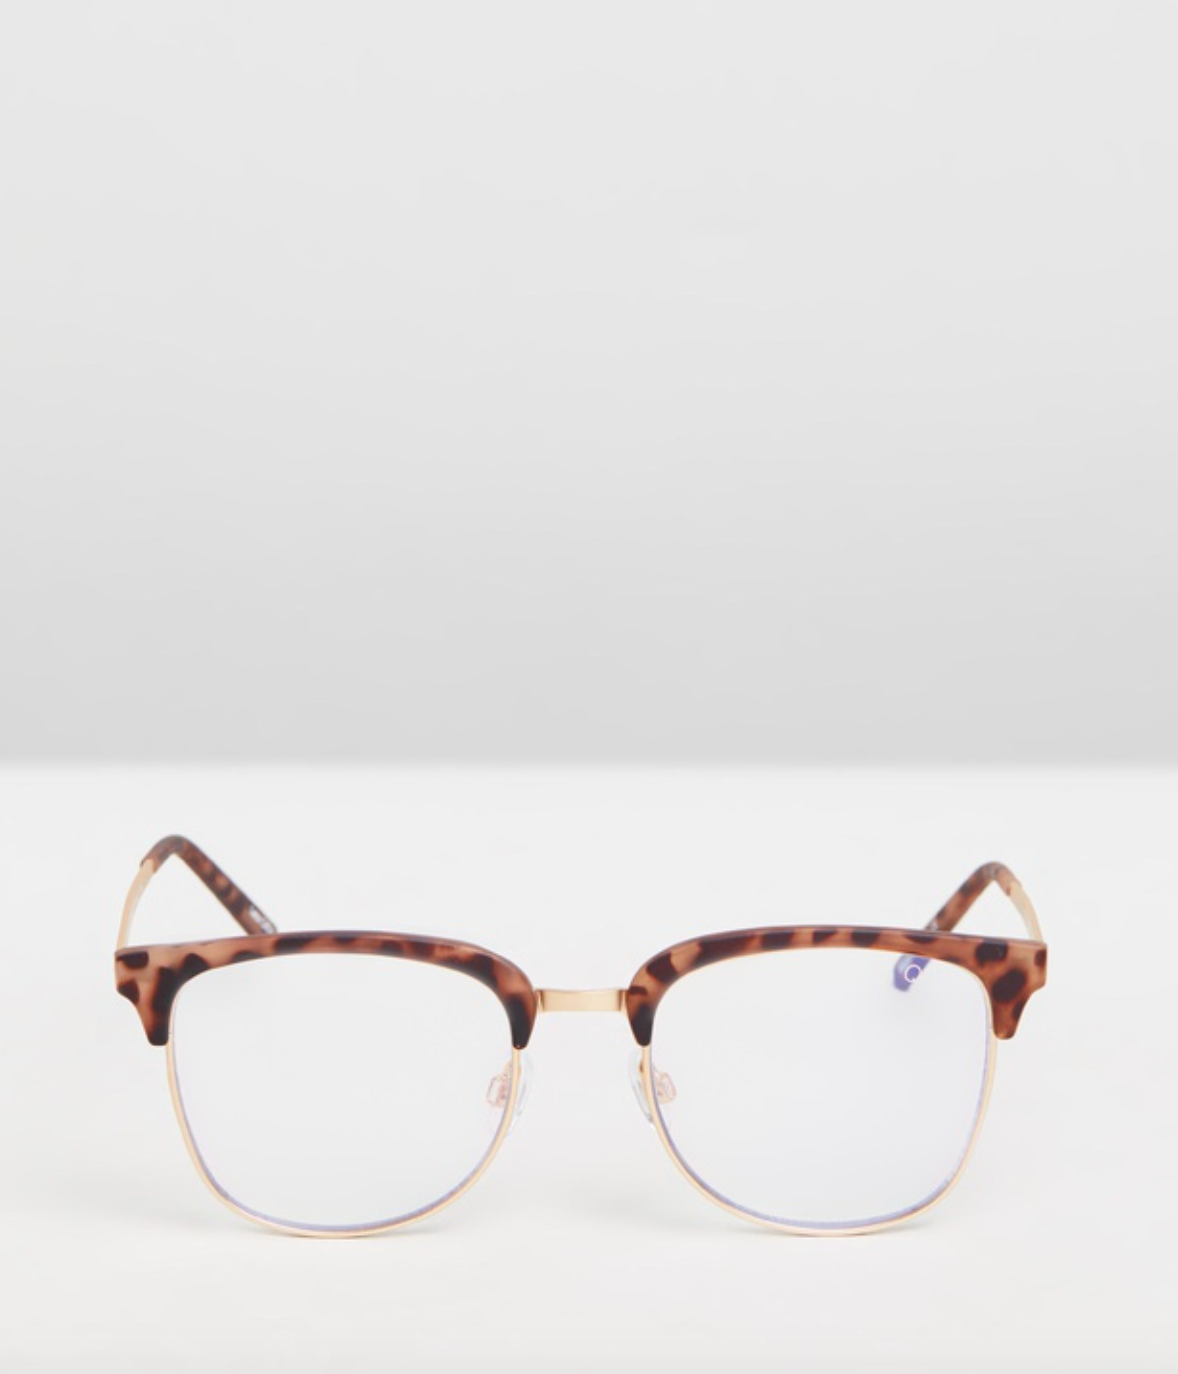 Quay 'Evasive' Bluelight Glasses in Tortoisehell